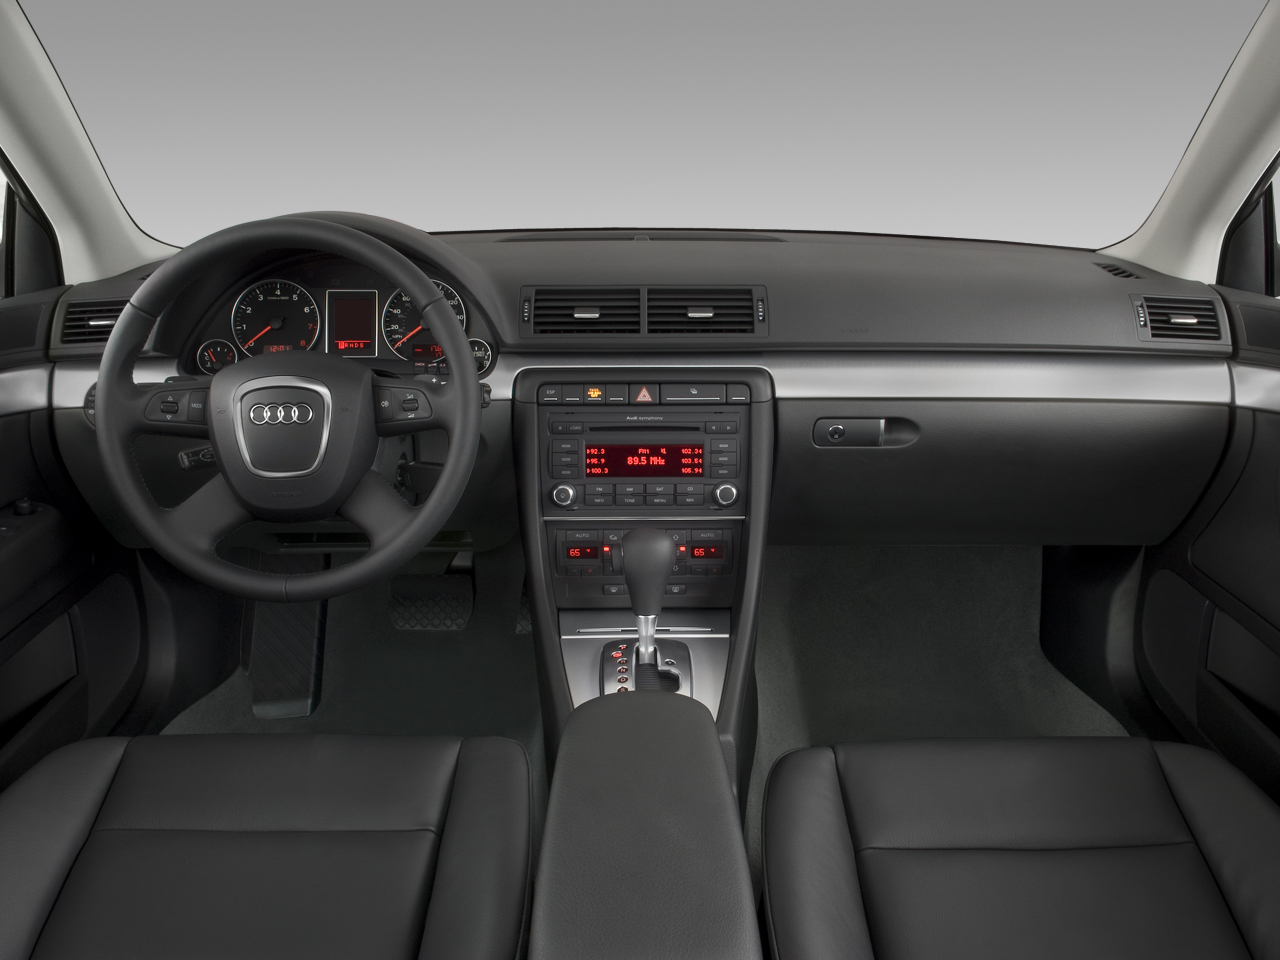 Audi 2008 audi a4 horsepower : 2008 Audi A4 Special Edition - Latest News, Reviews, and Auto Show ...